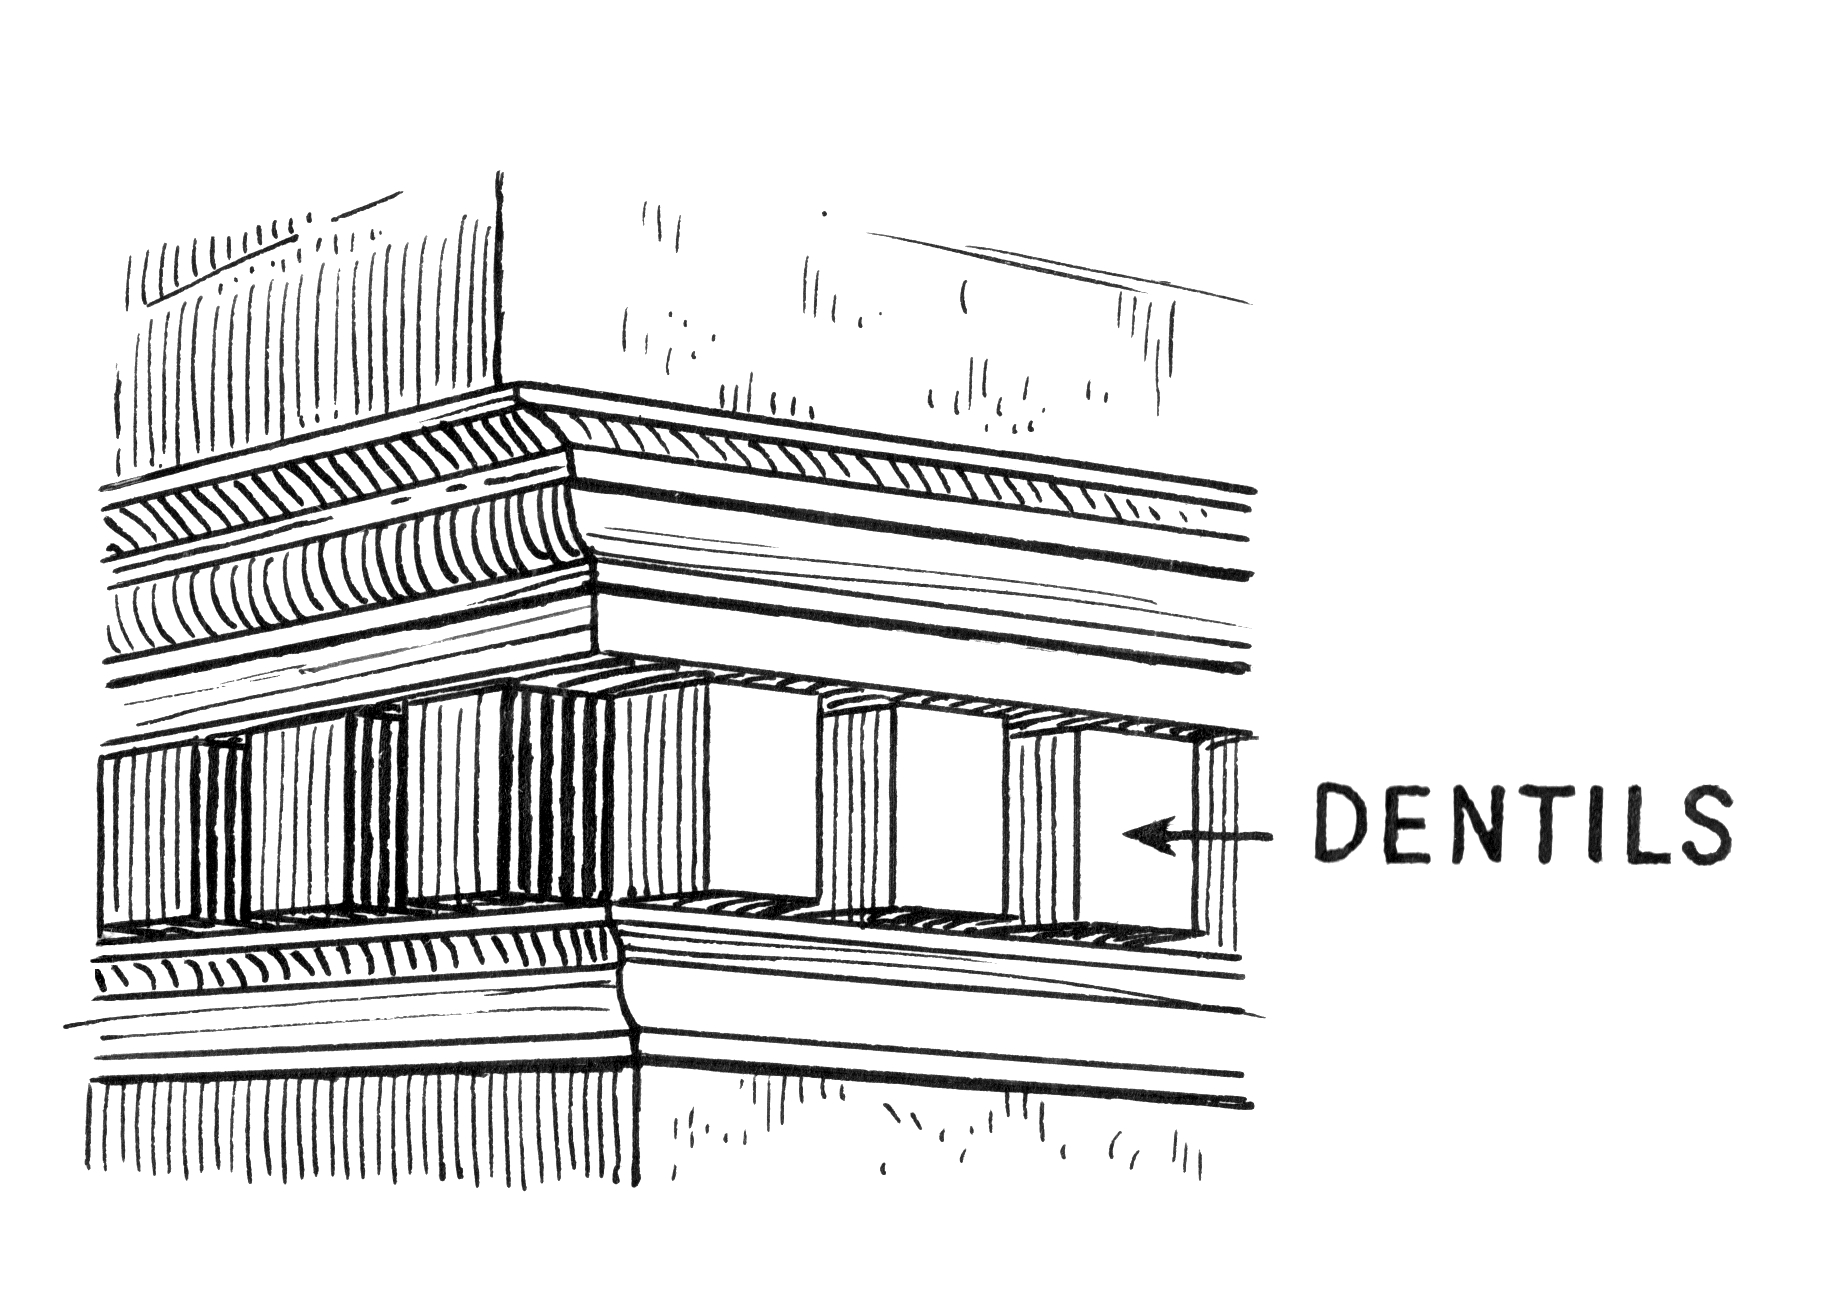 ionic columns and dentil - photo #28